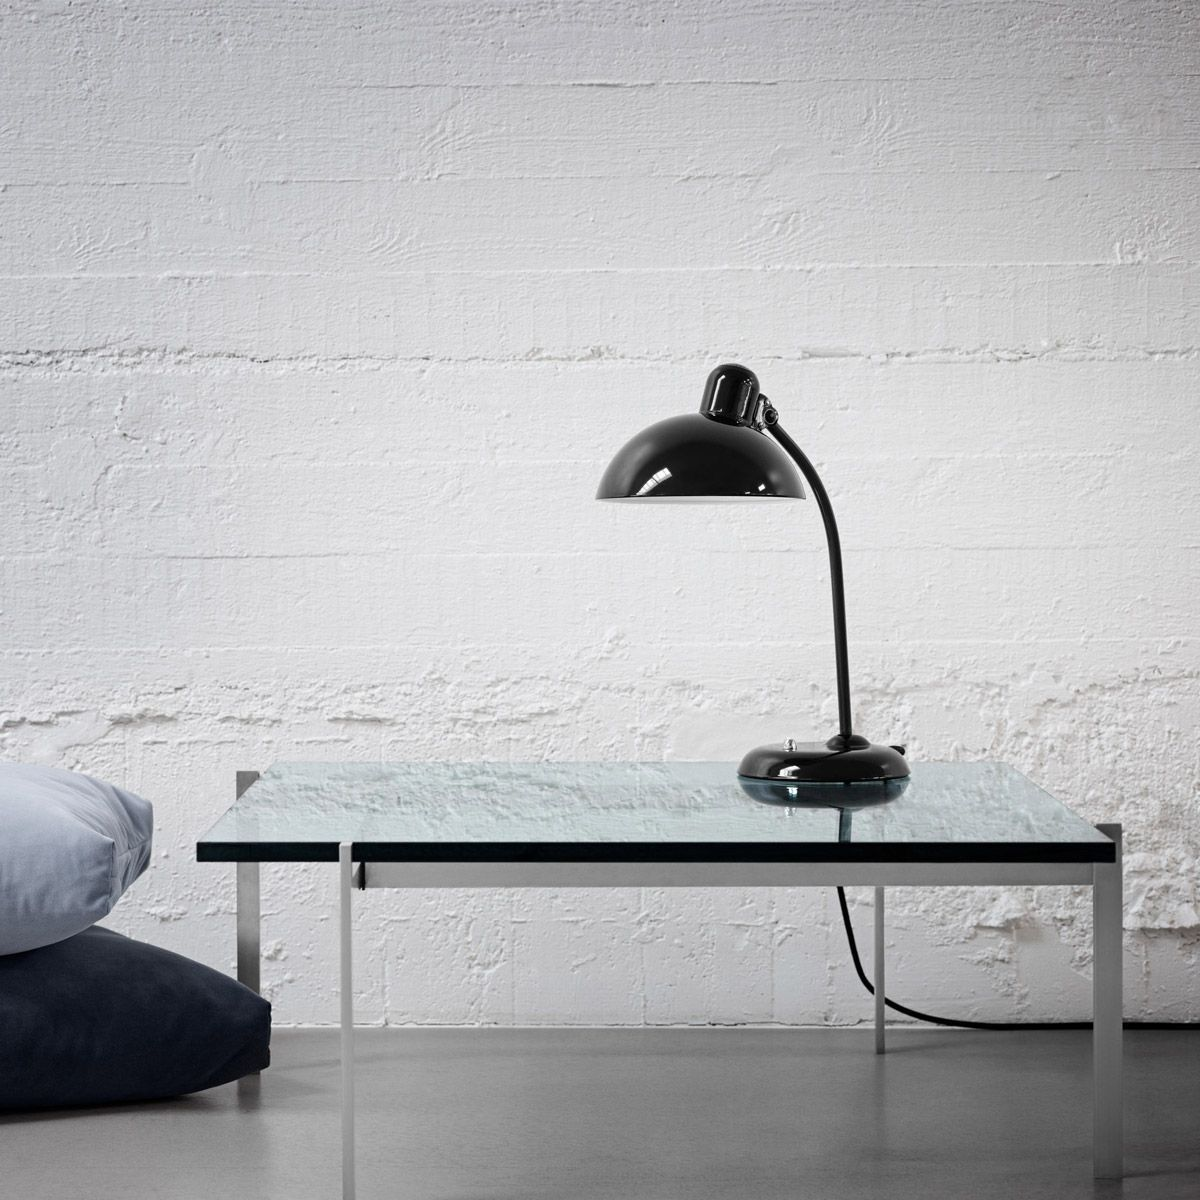 Kaiser Idell 6556T Black Lamp by Christian Dell edited by Light Years